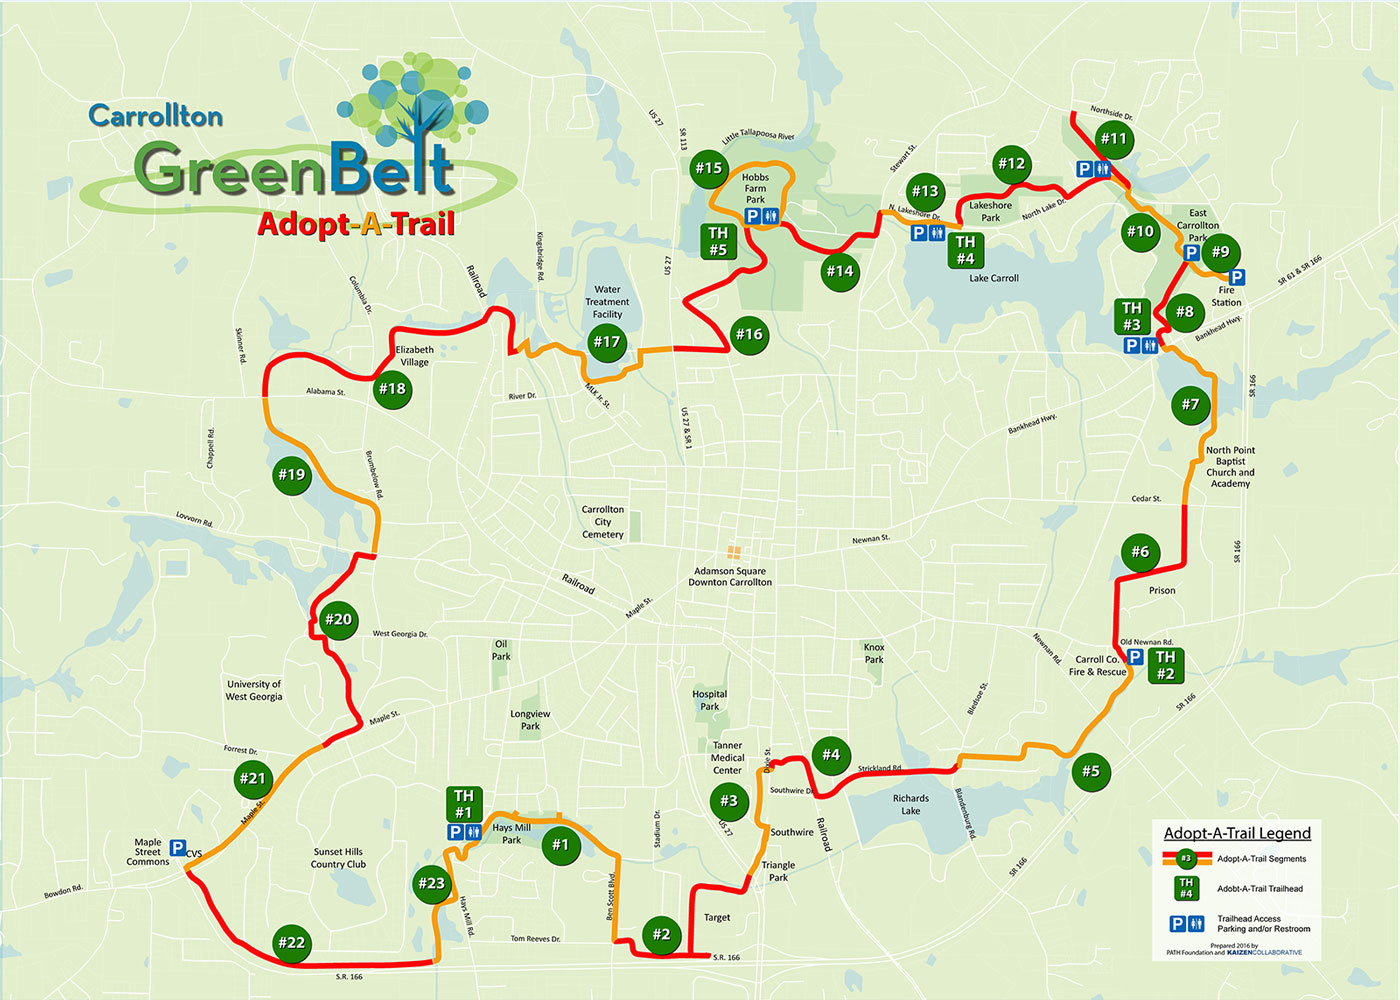 Green Belt Aat Map 2016